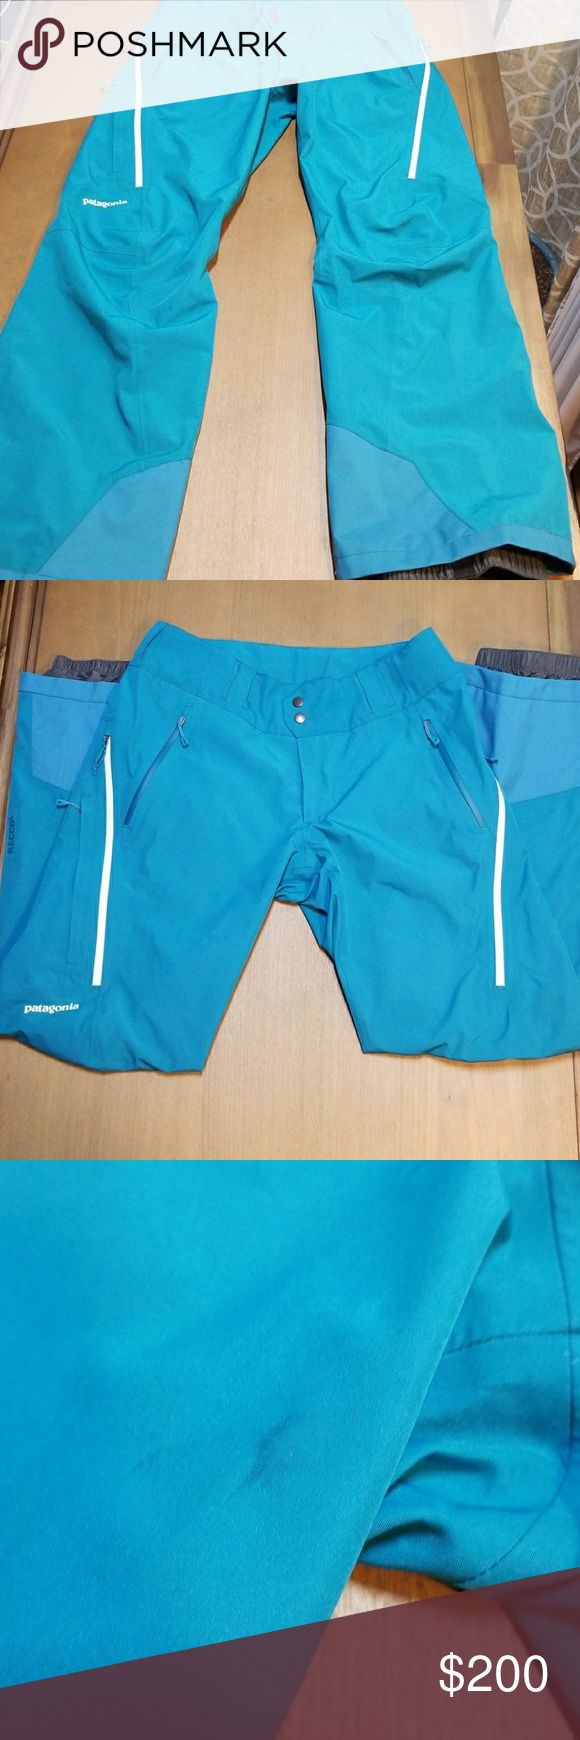 Patagonia womens powder bowl snow pants medium Euc, a few minor stains but no rips or anything that noticeable. Style #31431 Beautiful elwha blue. Size medium. Patagonia's tried-and-true ski or snowbard pantsGore-Tex defends against dumping snow and high winds Brushed tricot lining provides subtle warmthWater-resistant zippers help keep pocket contents dry Articulated knees have a more natural fit while skiingIntegrated gaiters form a snow-tight seal around bootBuilt-in reflector may help…